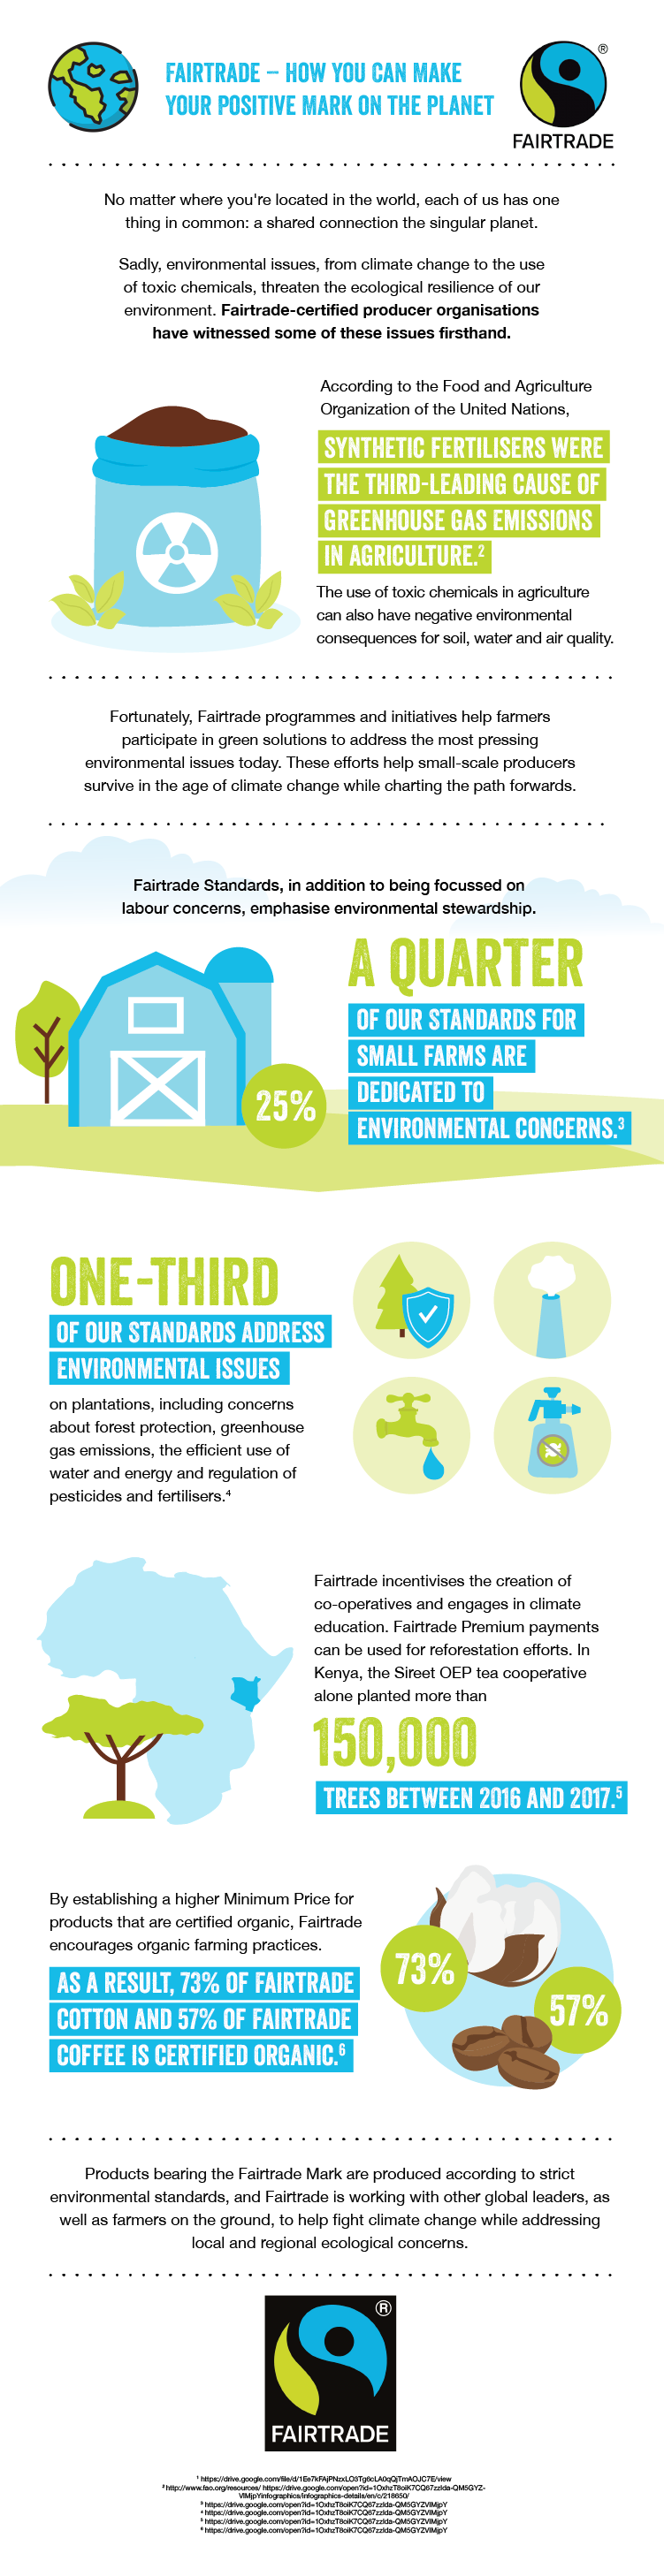 How Fairtrade helps make a positive mark on the planet infographic